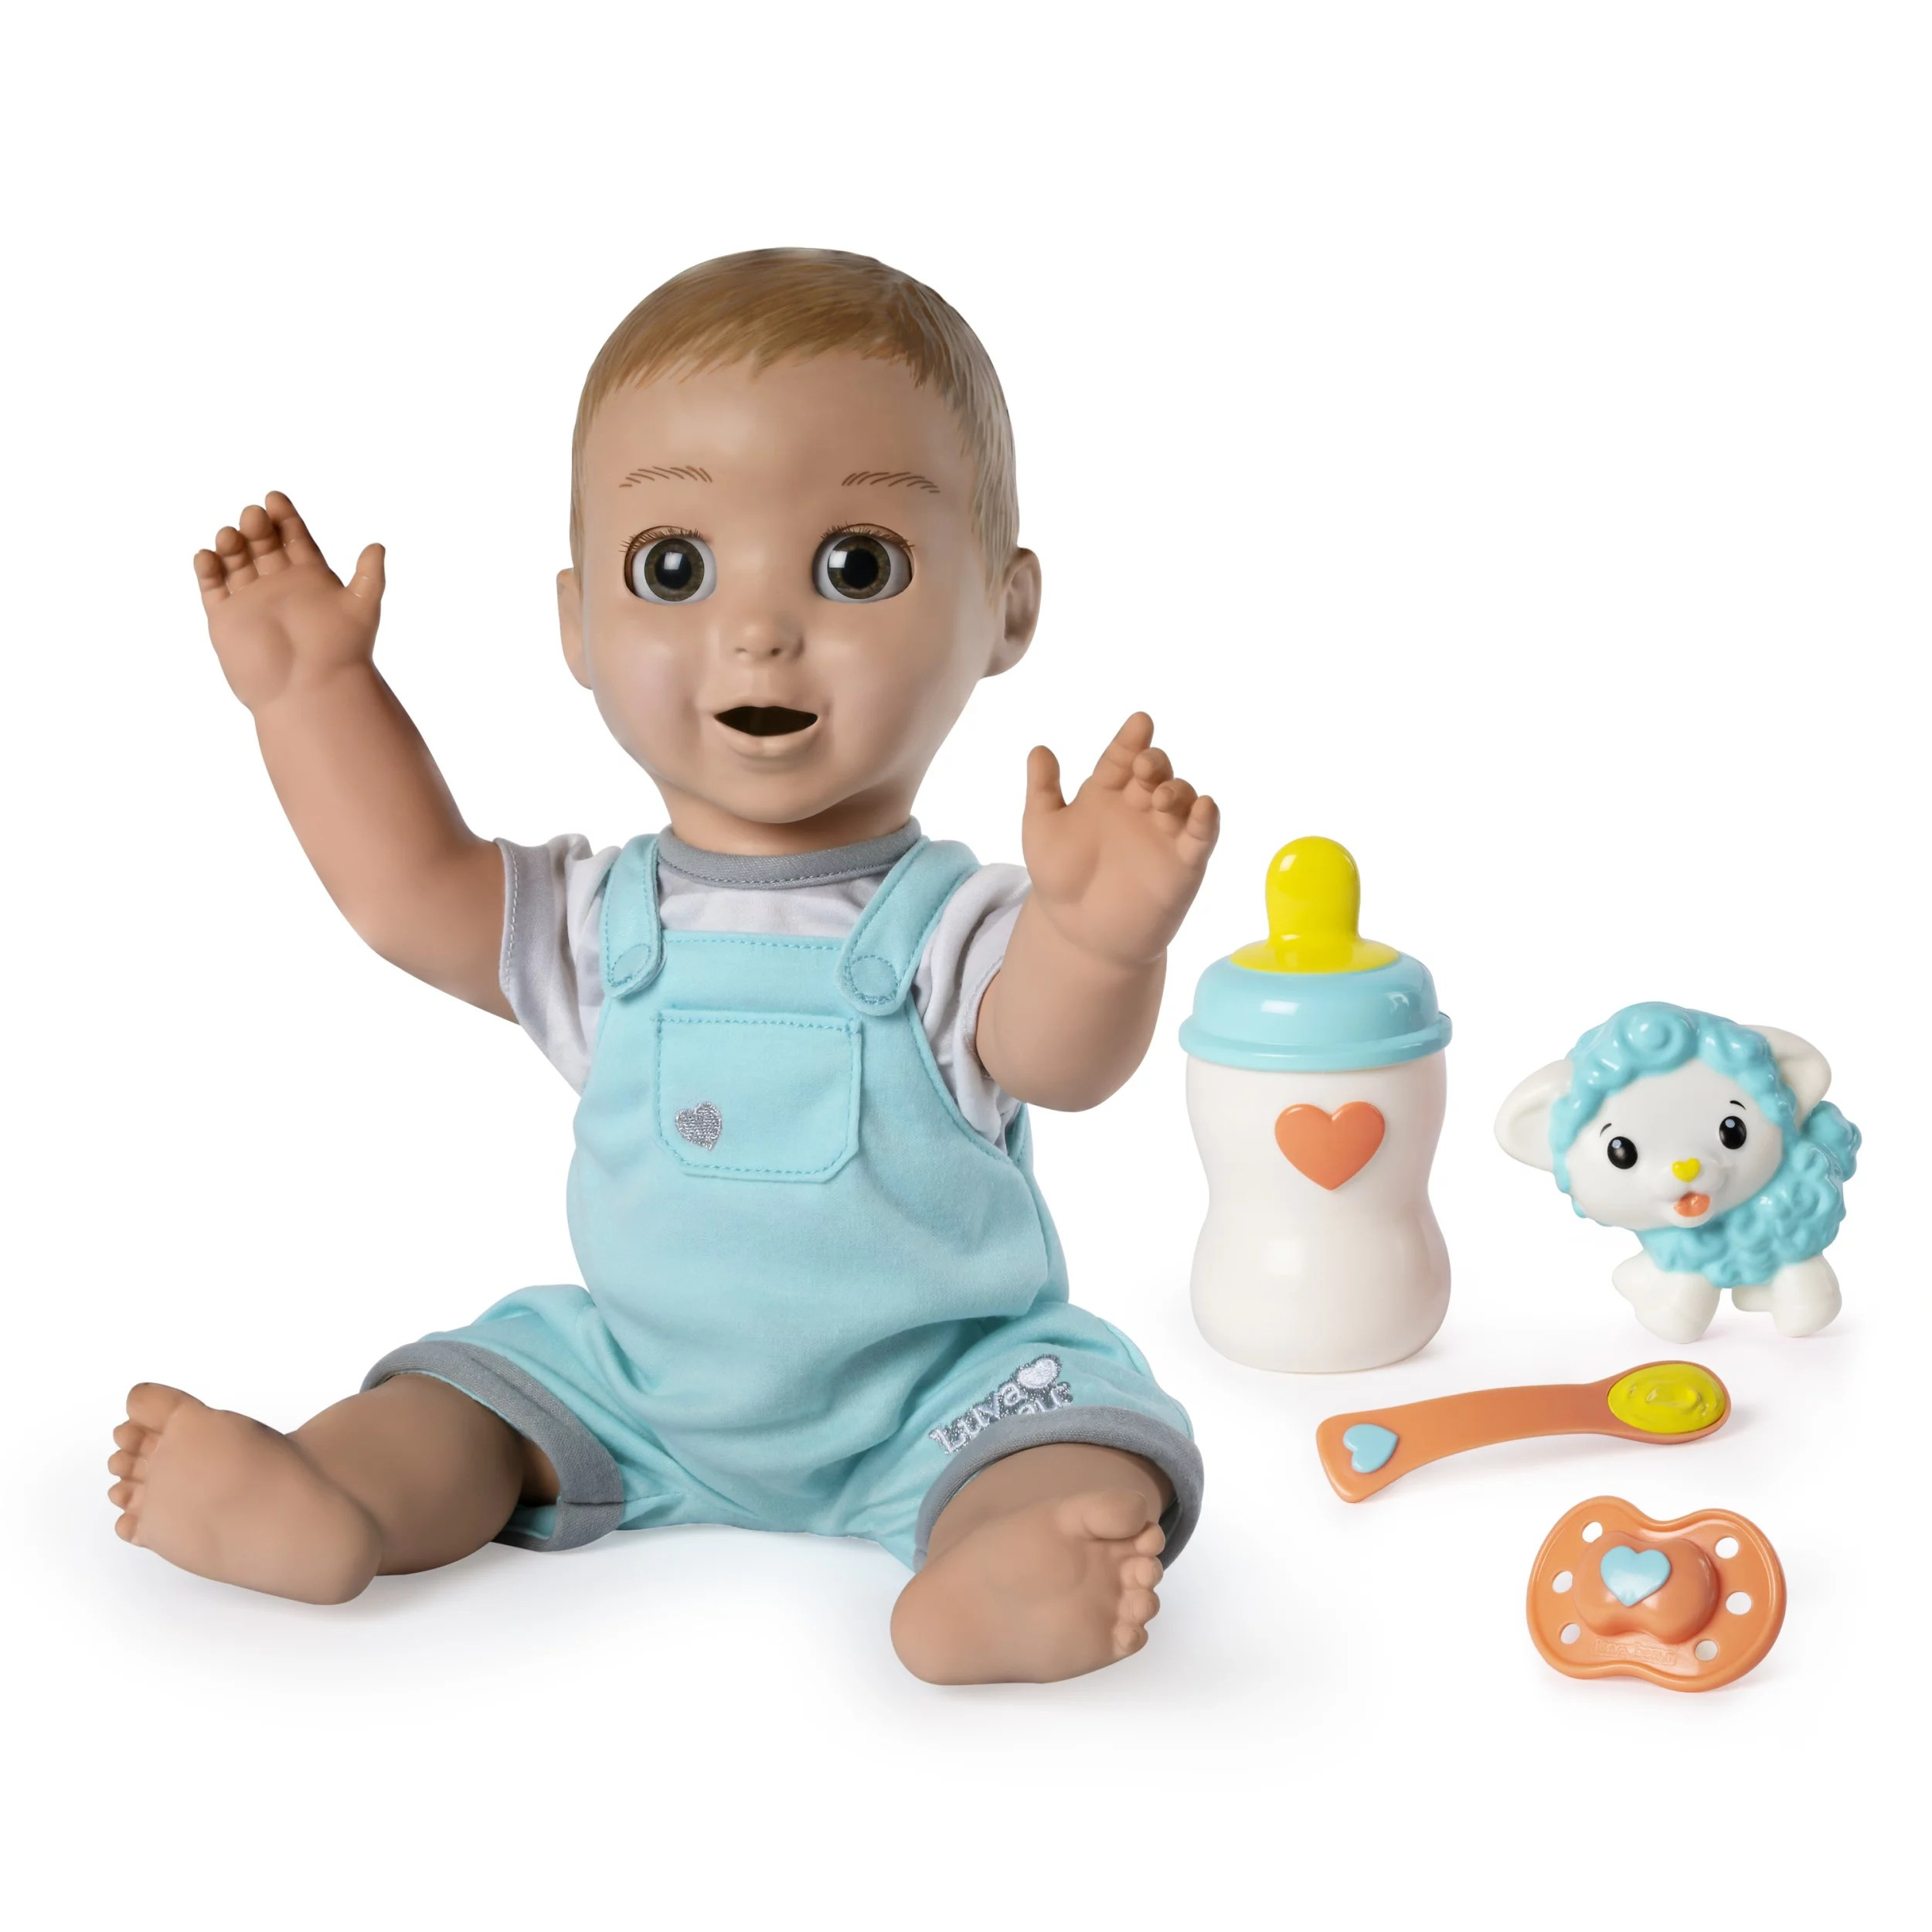 Babies Interactive Toys Luvabeau Responsive Baby Doll With Real Expressions And Movement For Ages 4 And Up